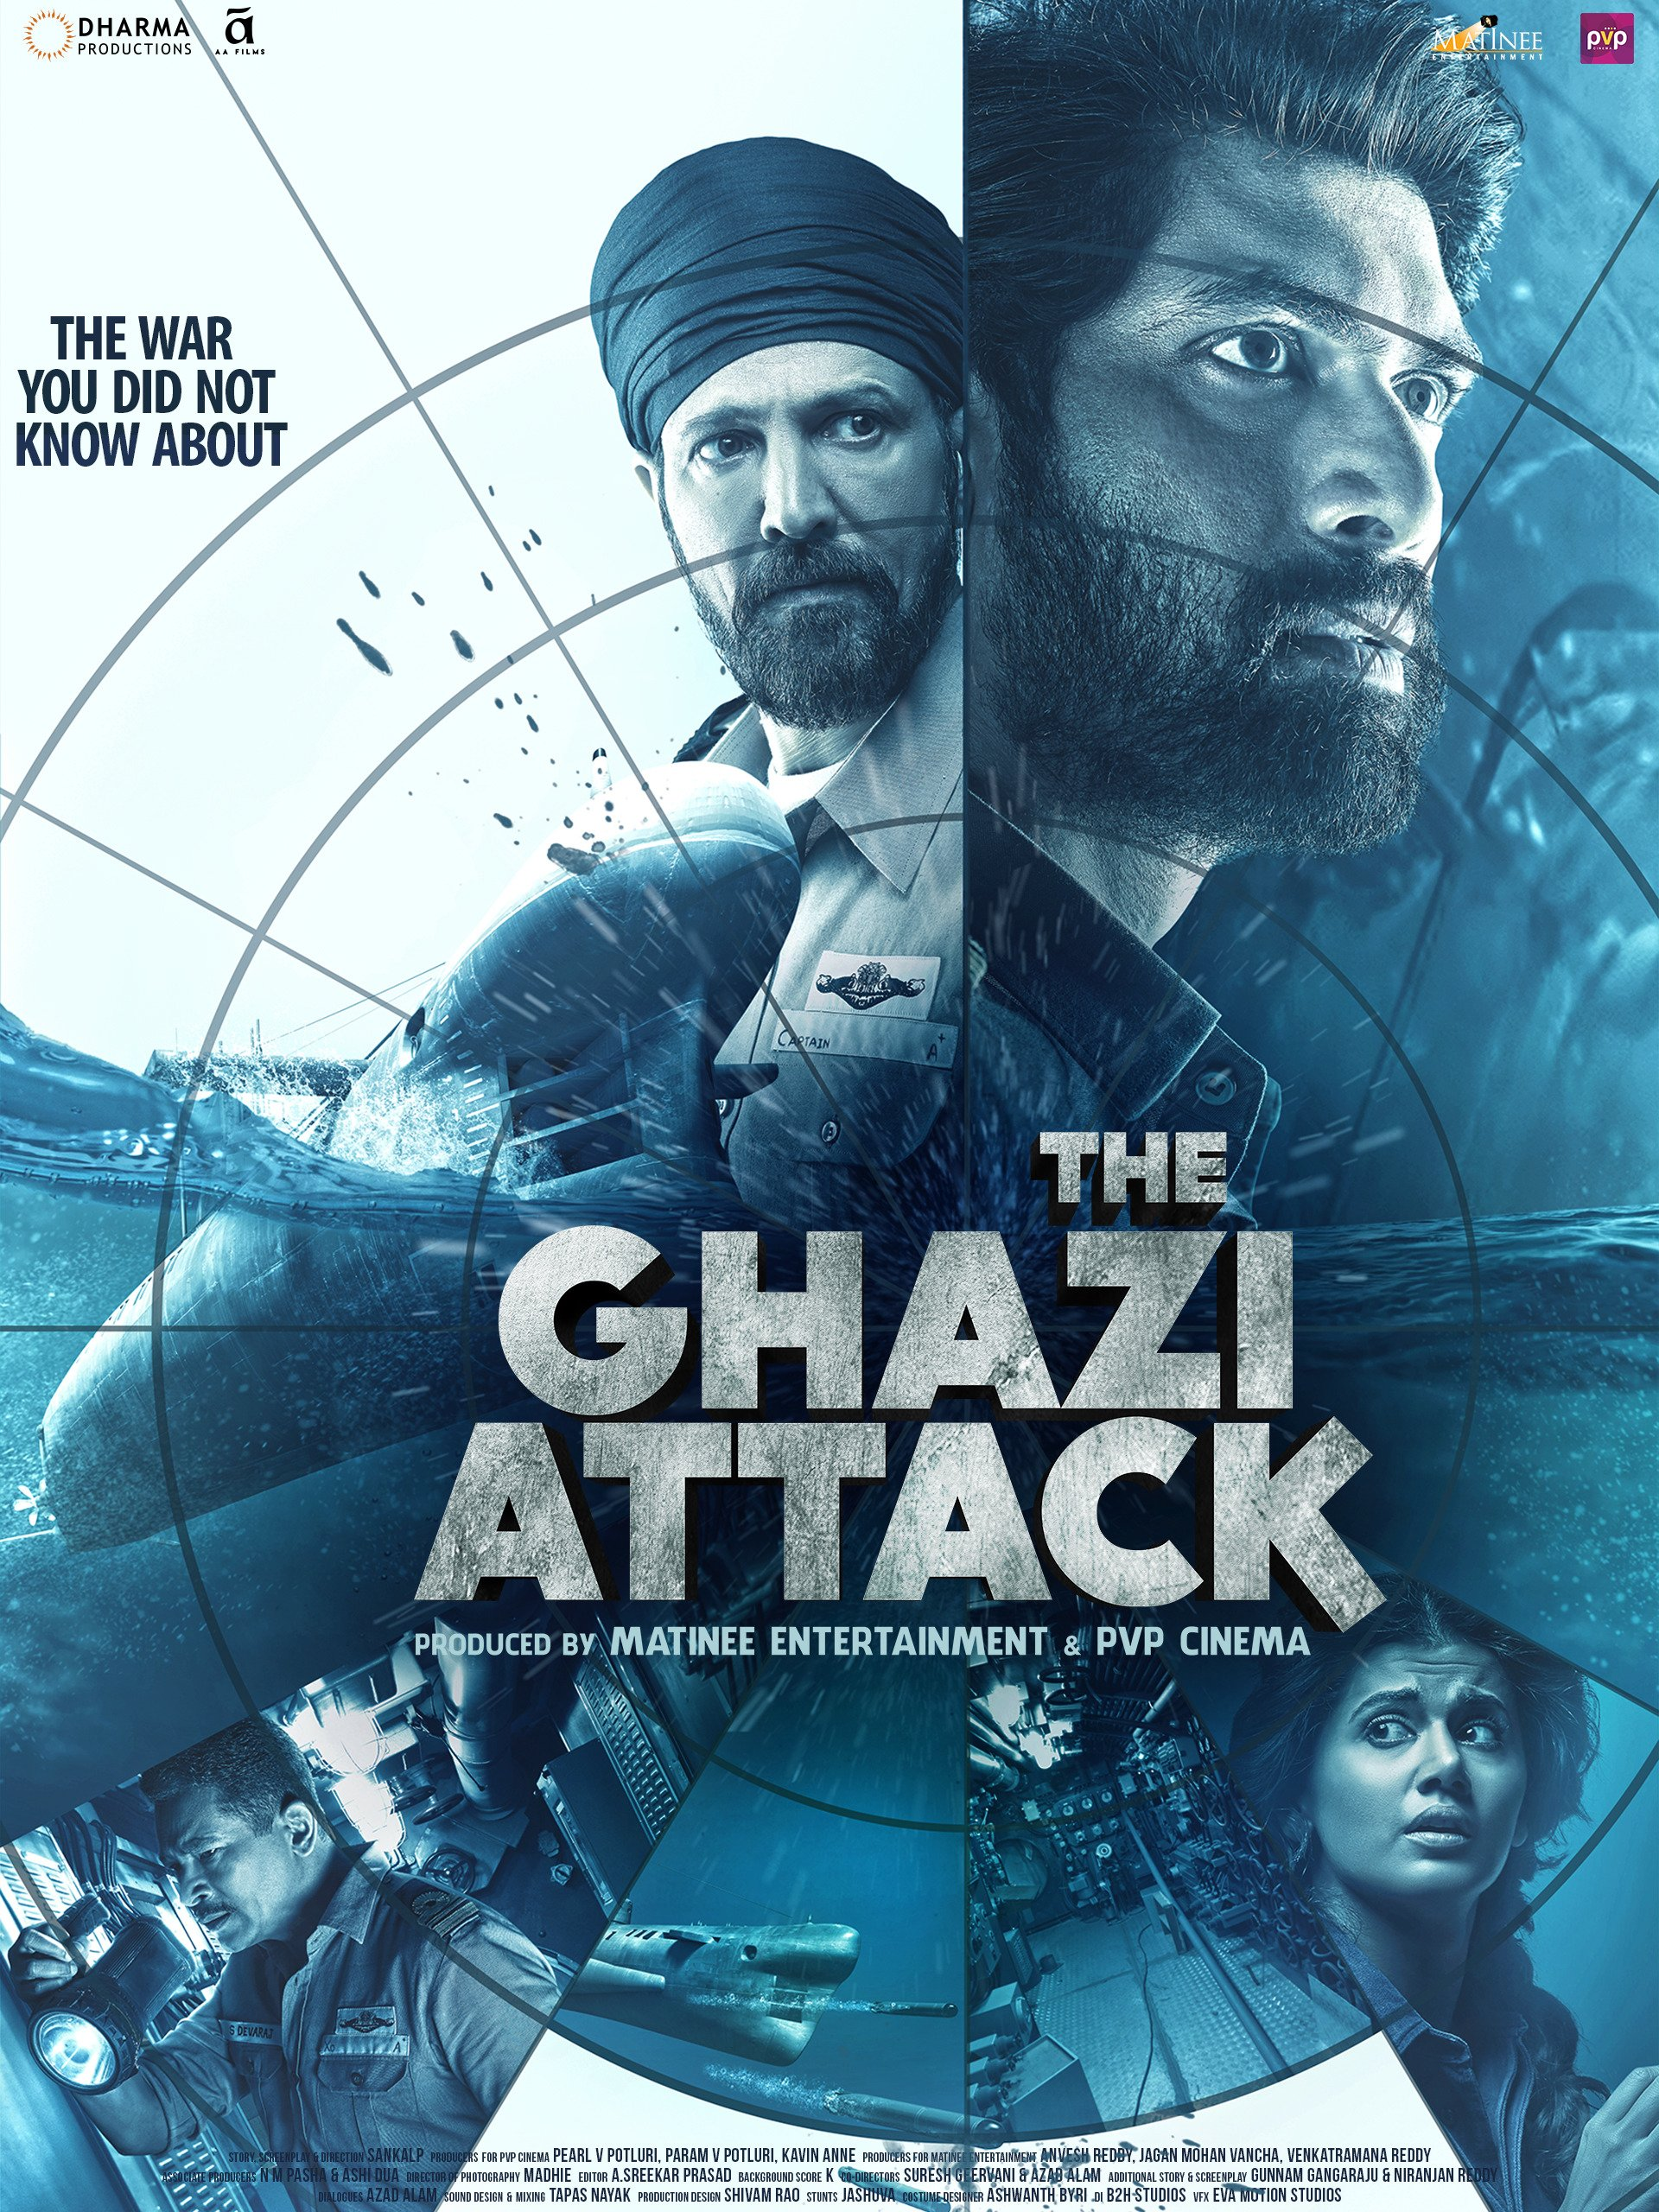 Amazon co uk: Watch The Ghazi Attack (Hindi) | Prime Video